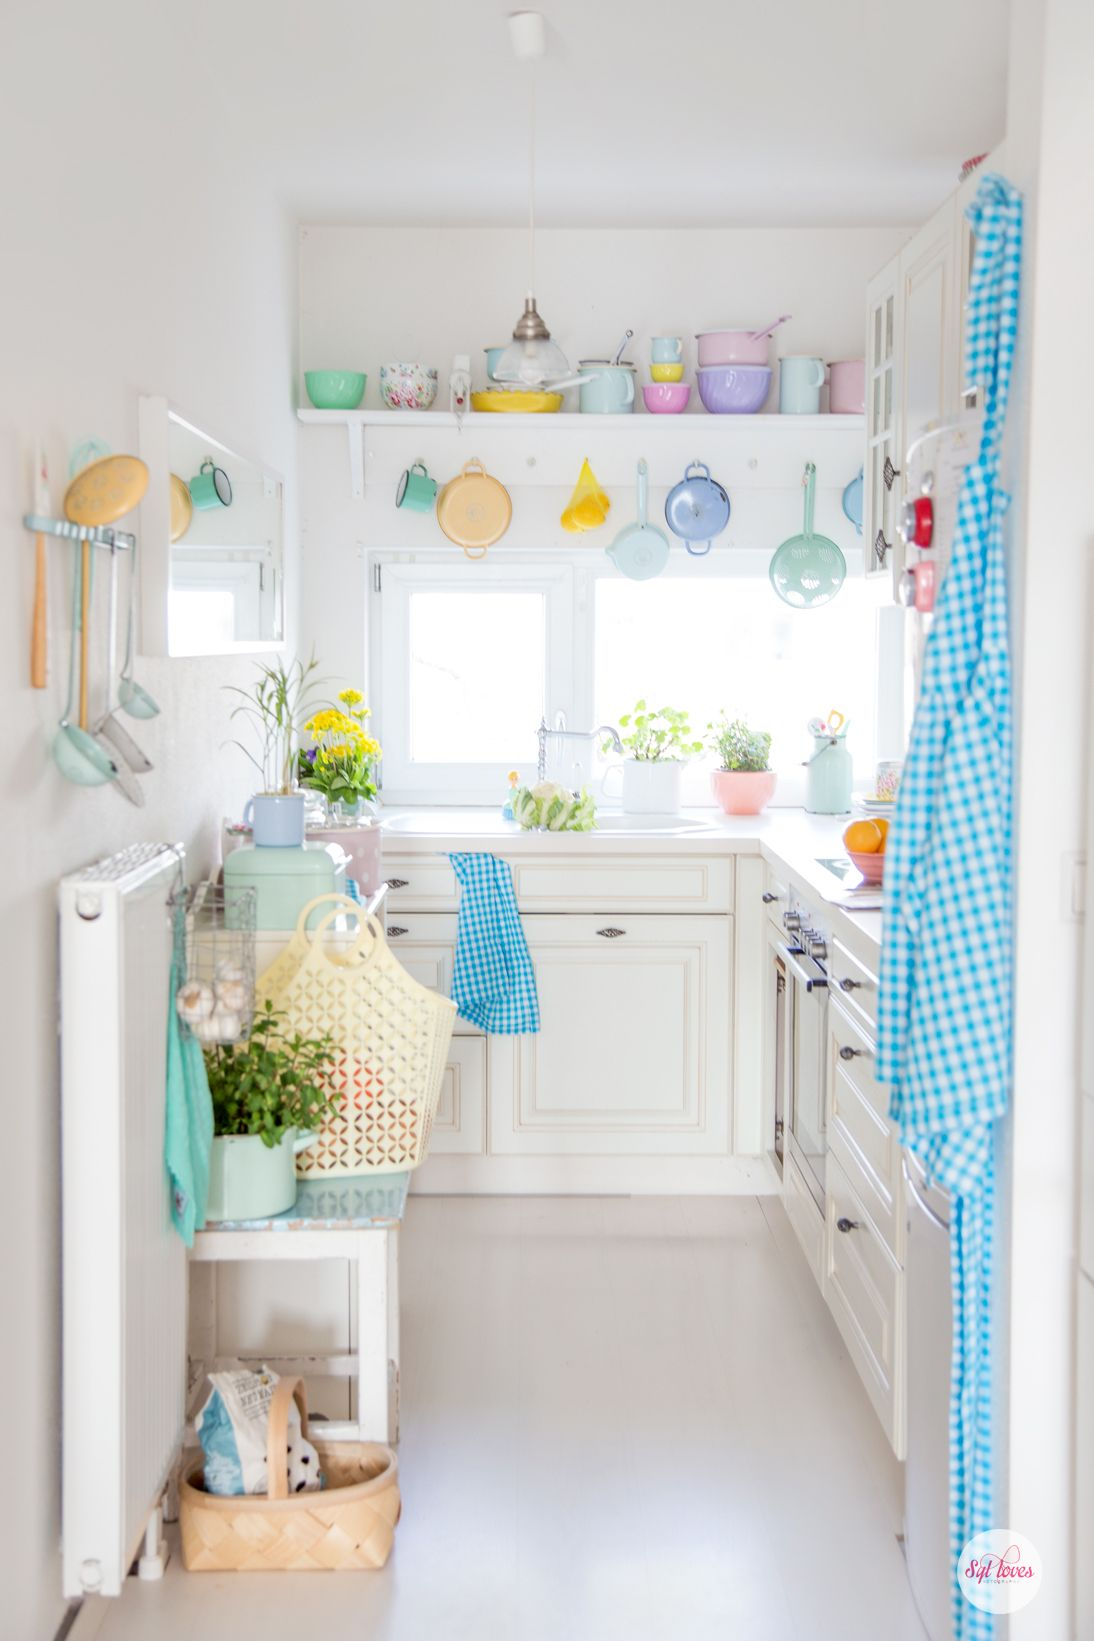 in my spring happy kitchen :-) Syl loves | Kitchen inspirations ...